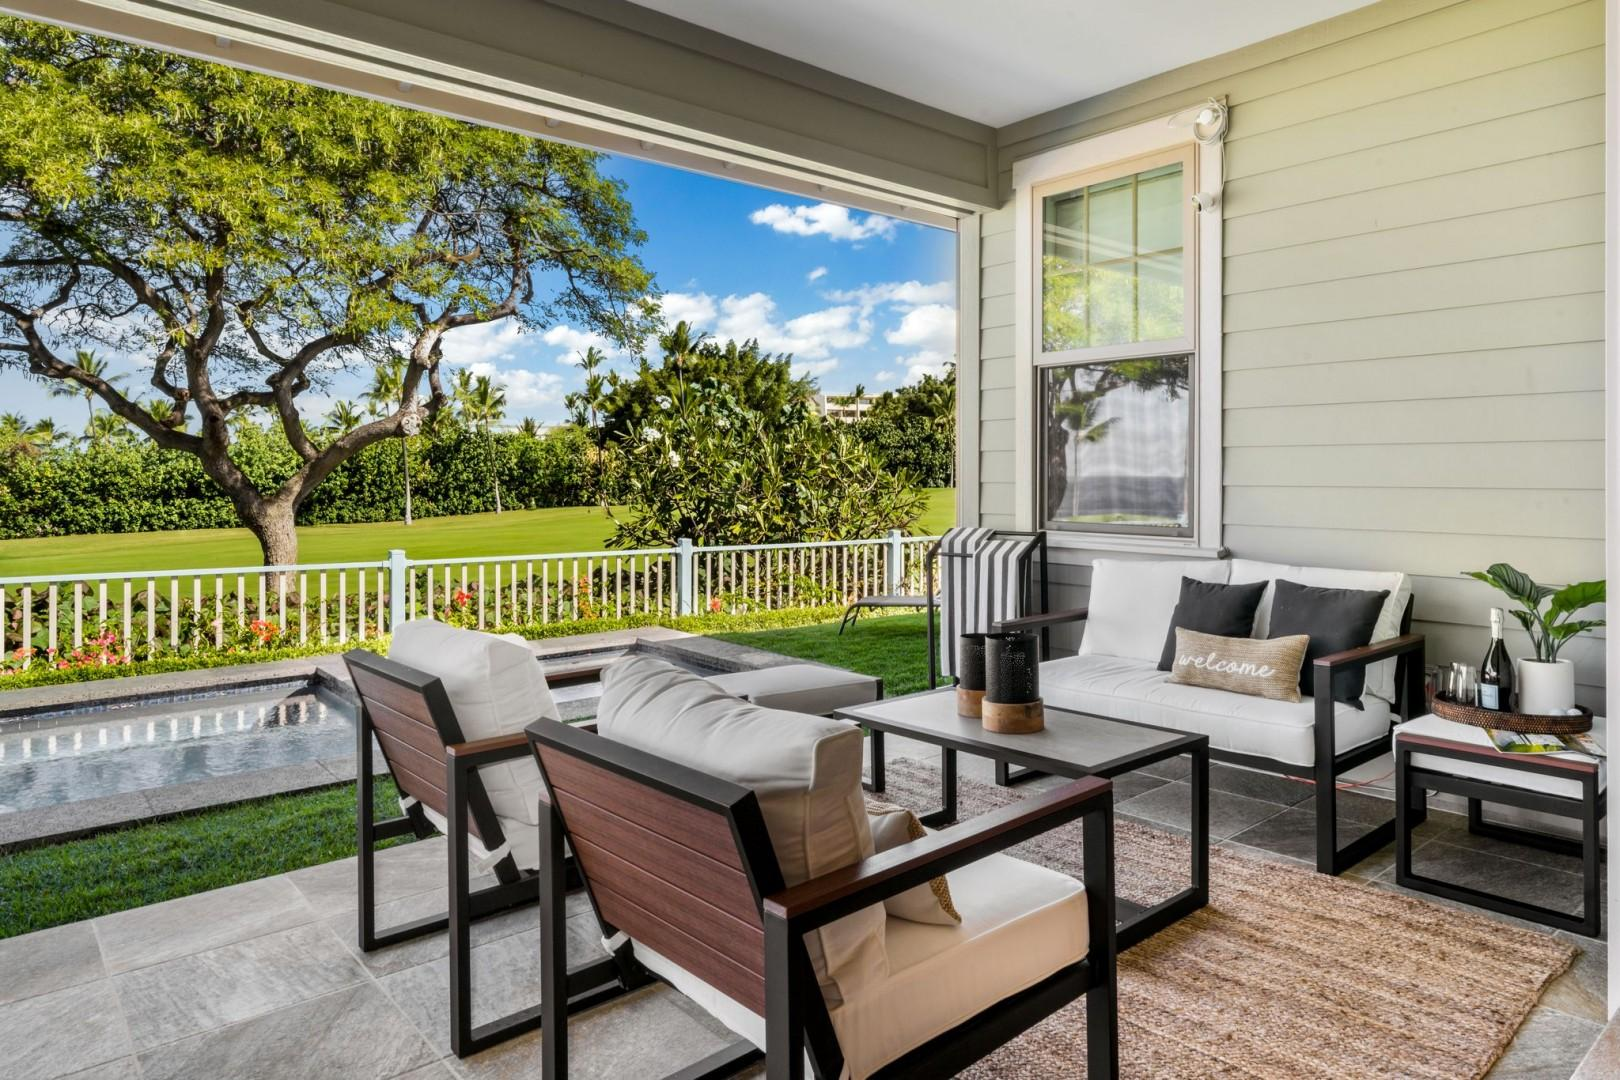 Enjoy catching up with family on the screened Lanai